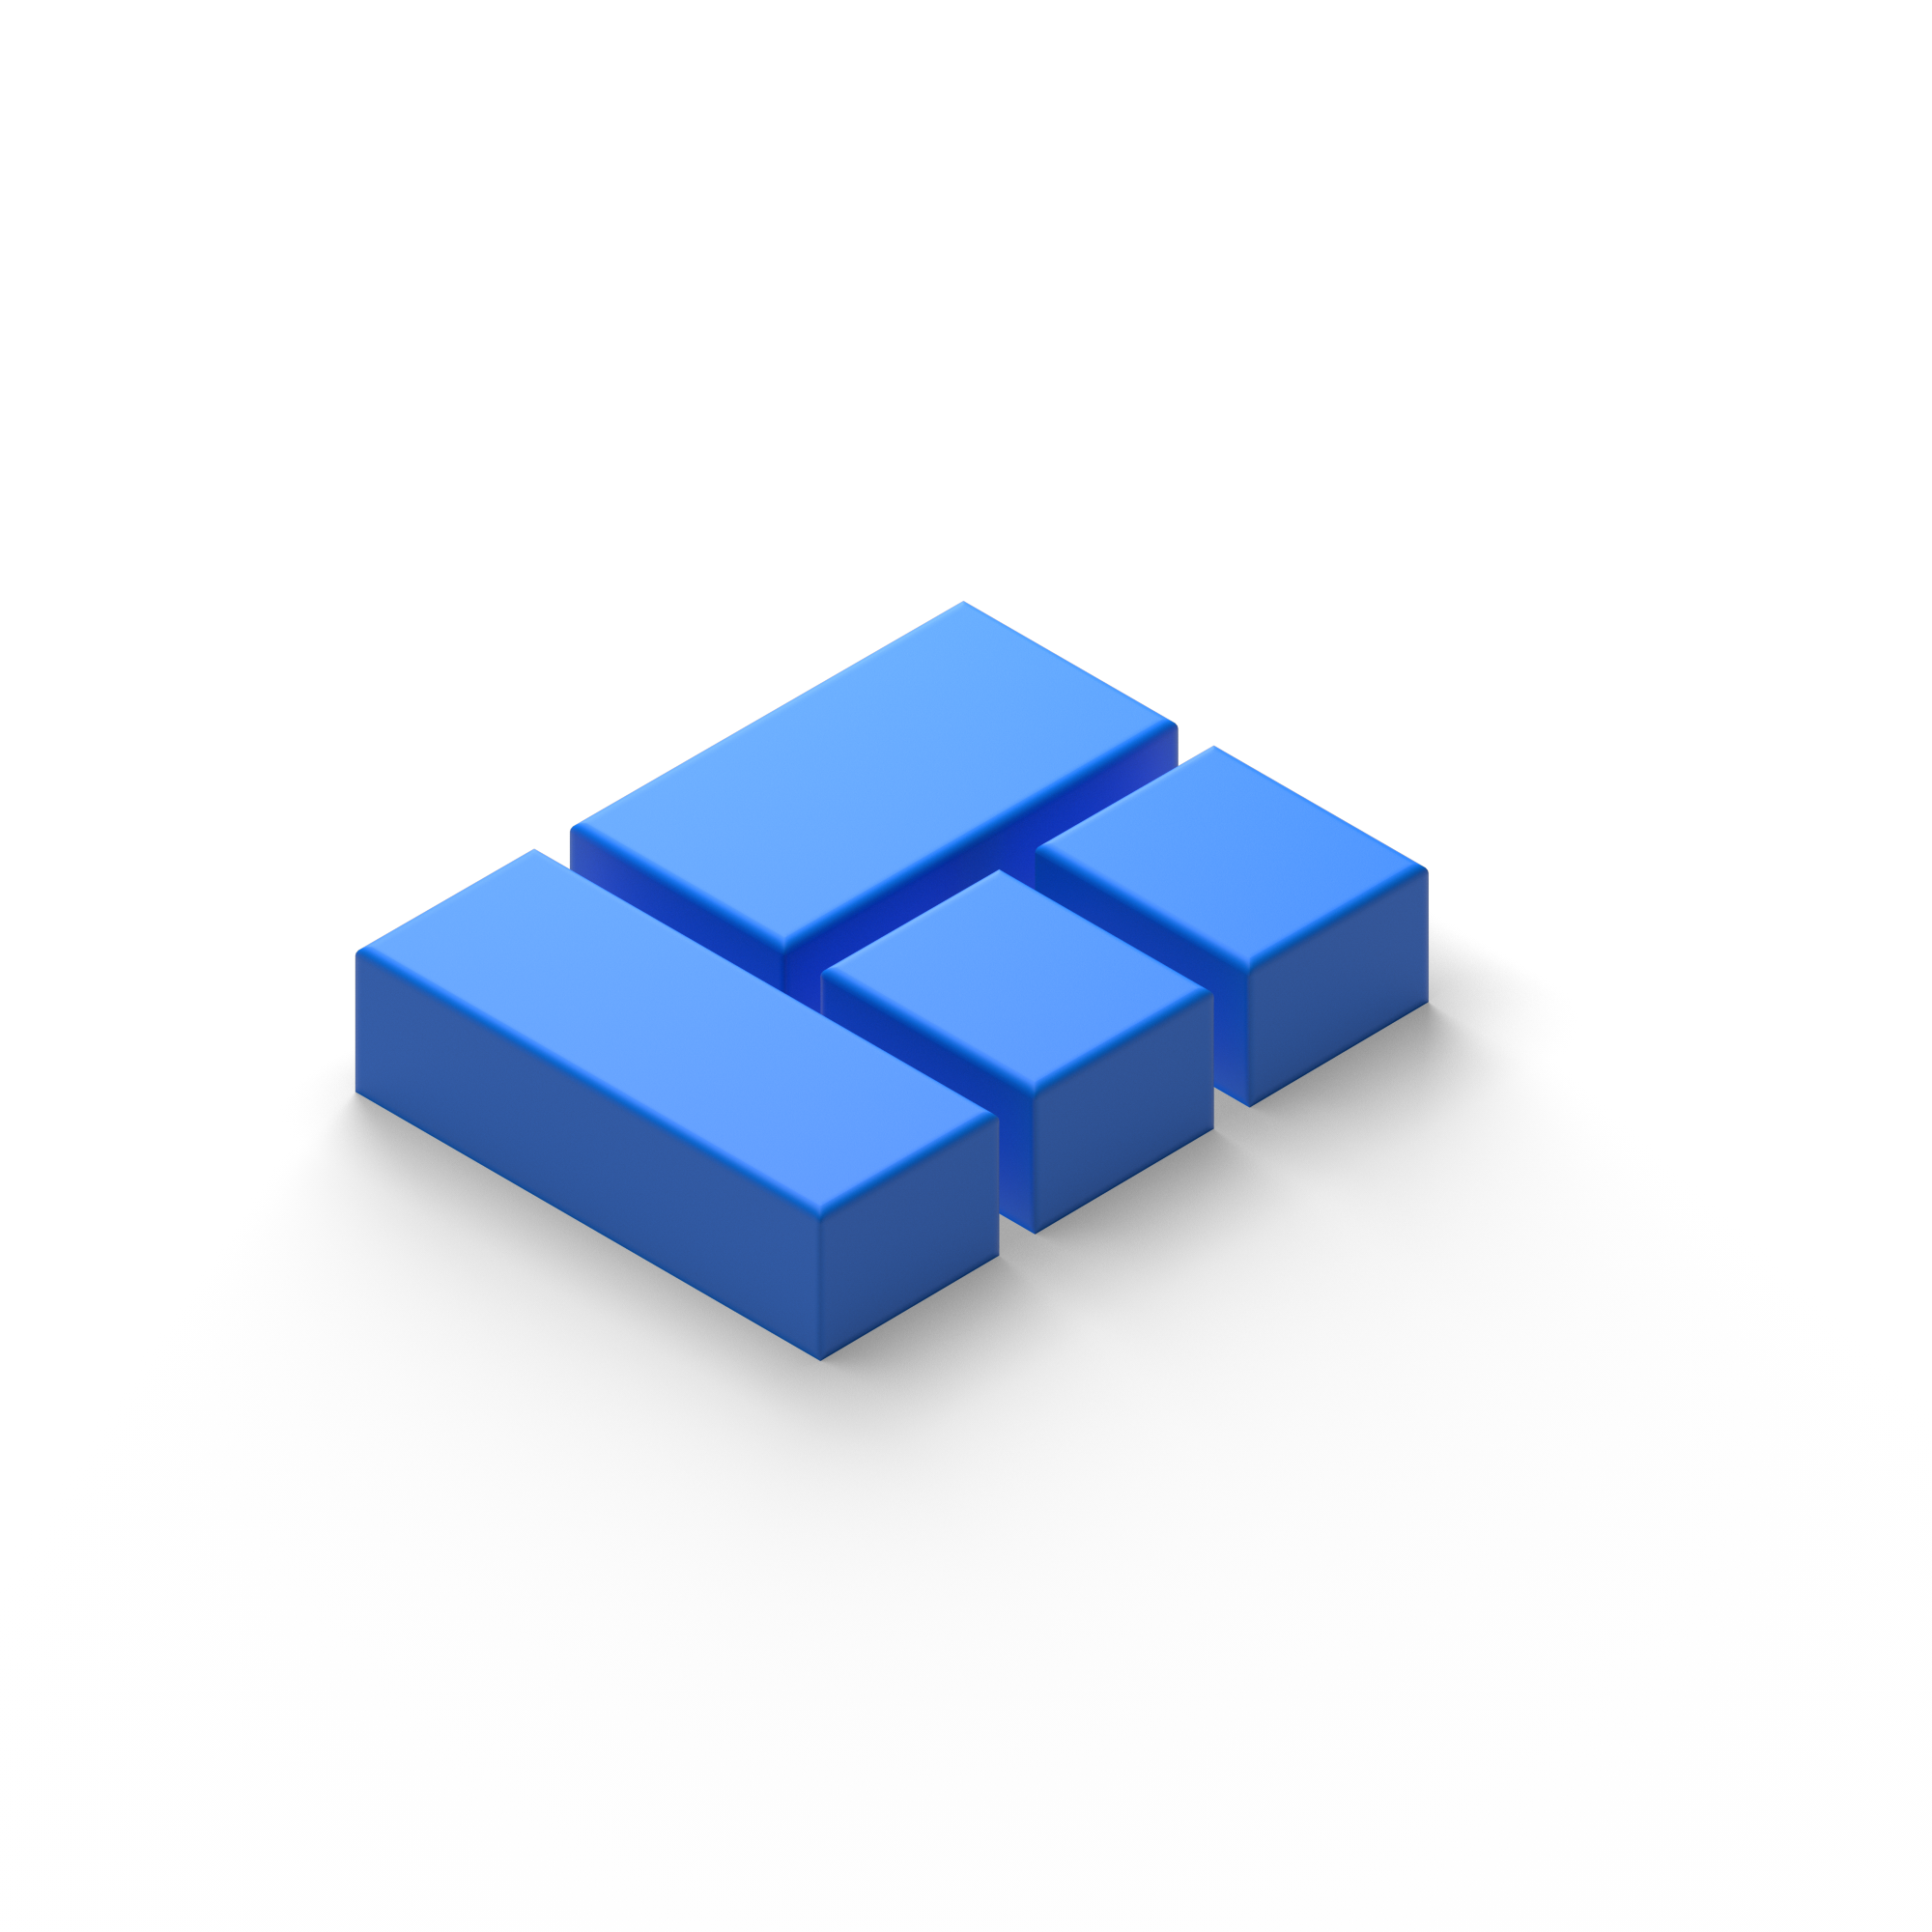 3D components icon